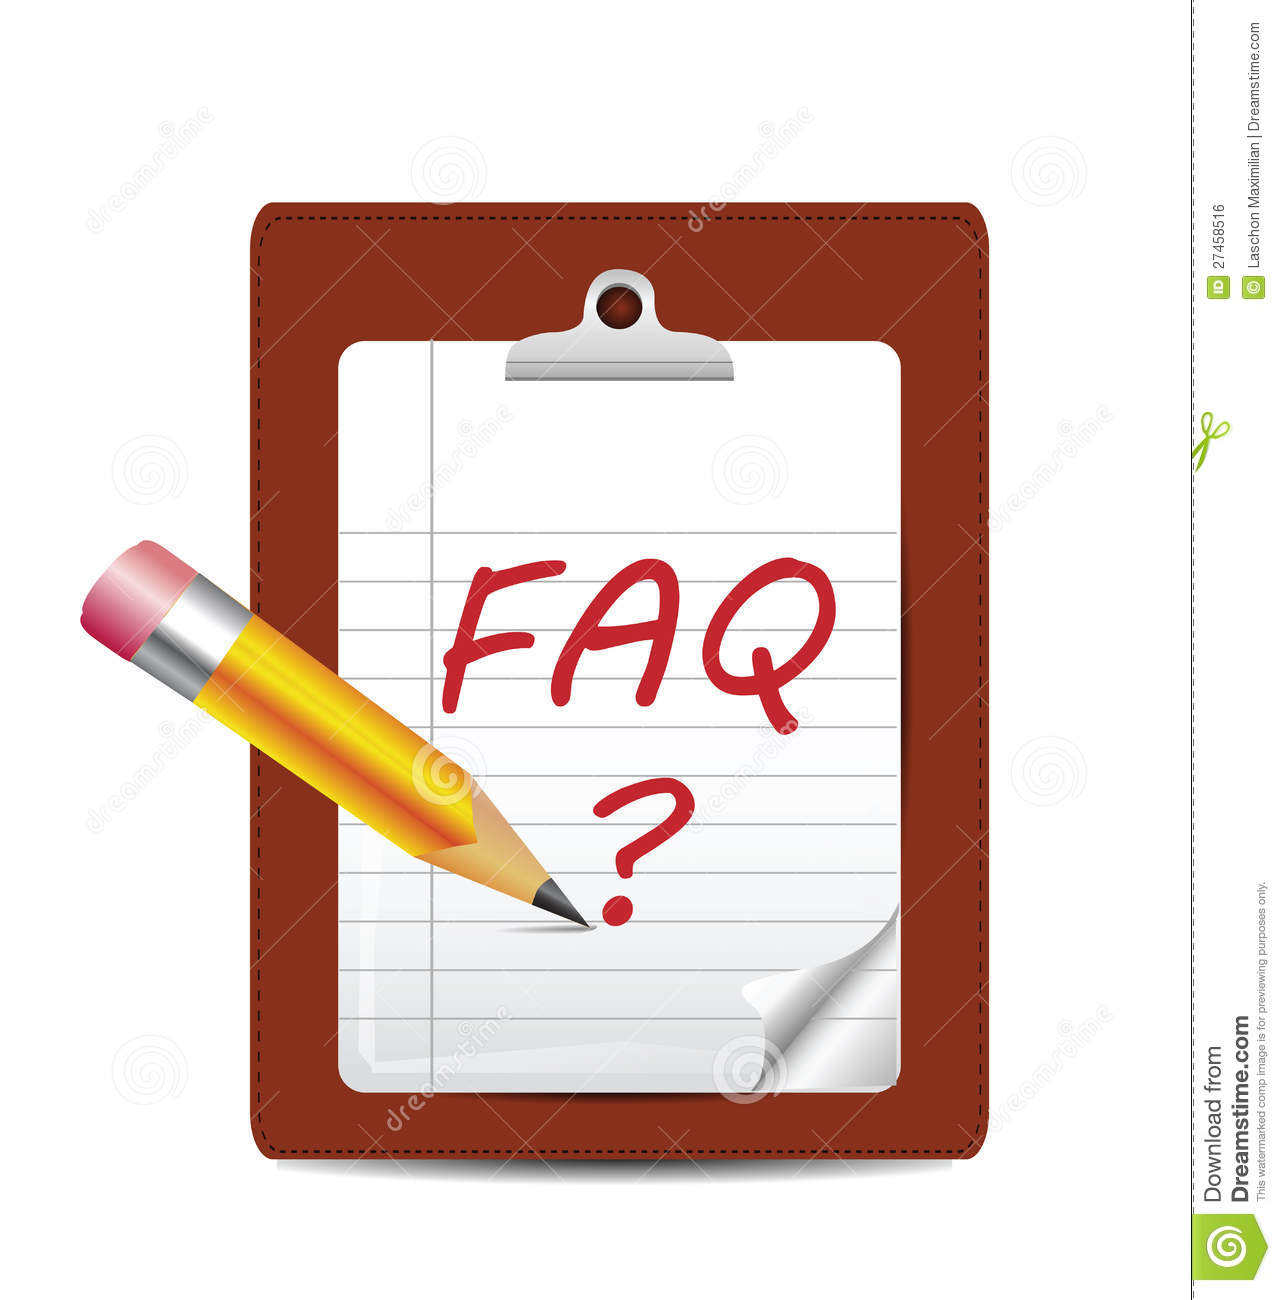 Frequently Asked Questions Icon Royalty Free Stock Image ...